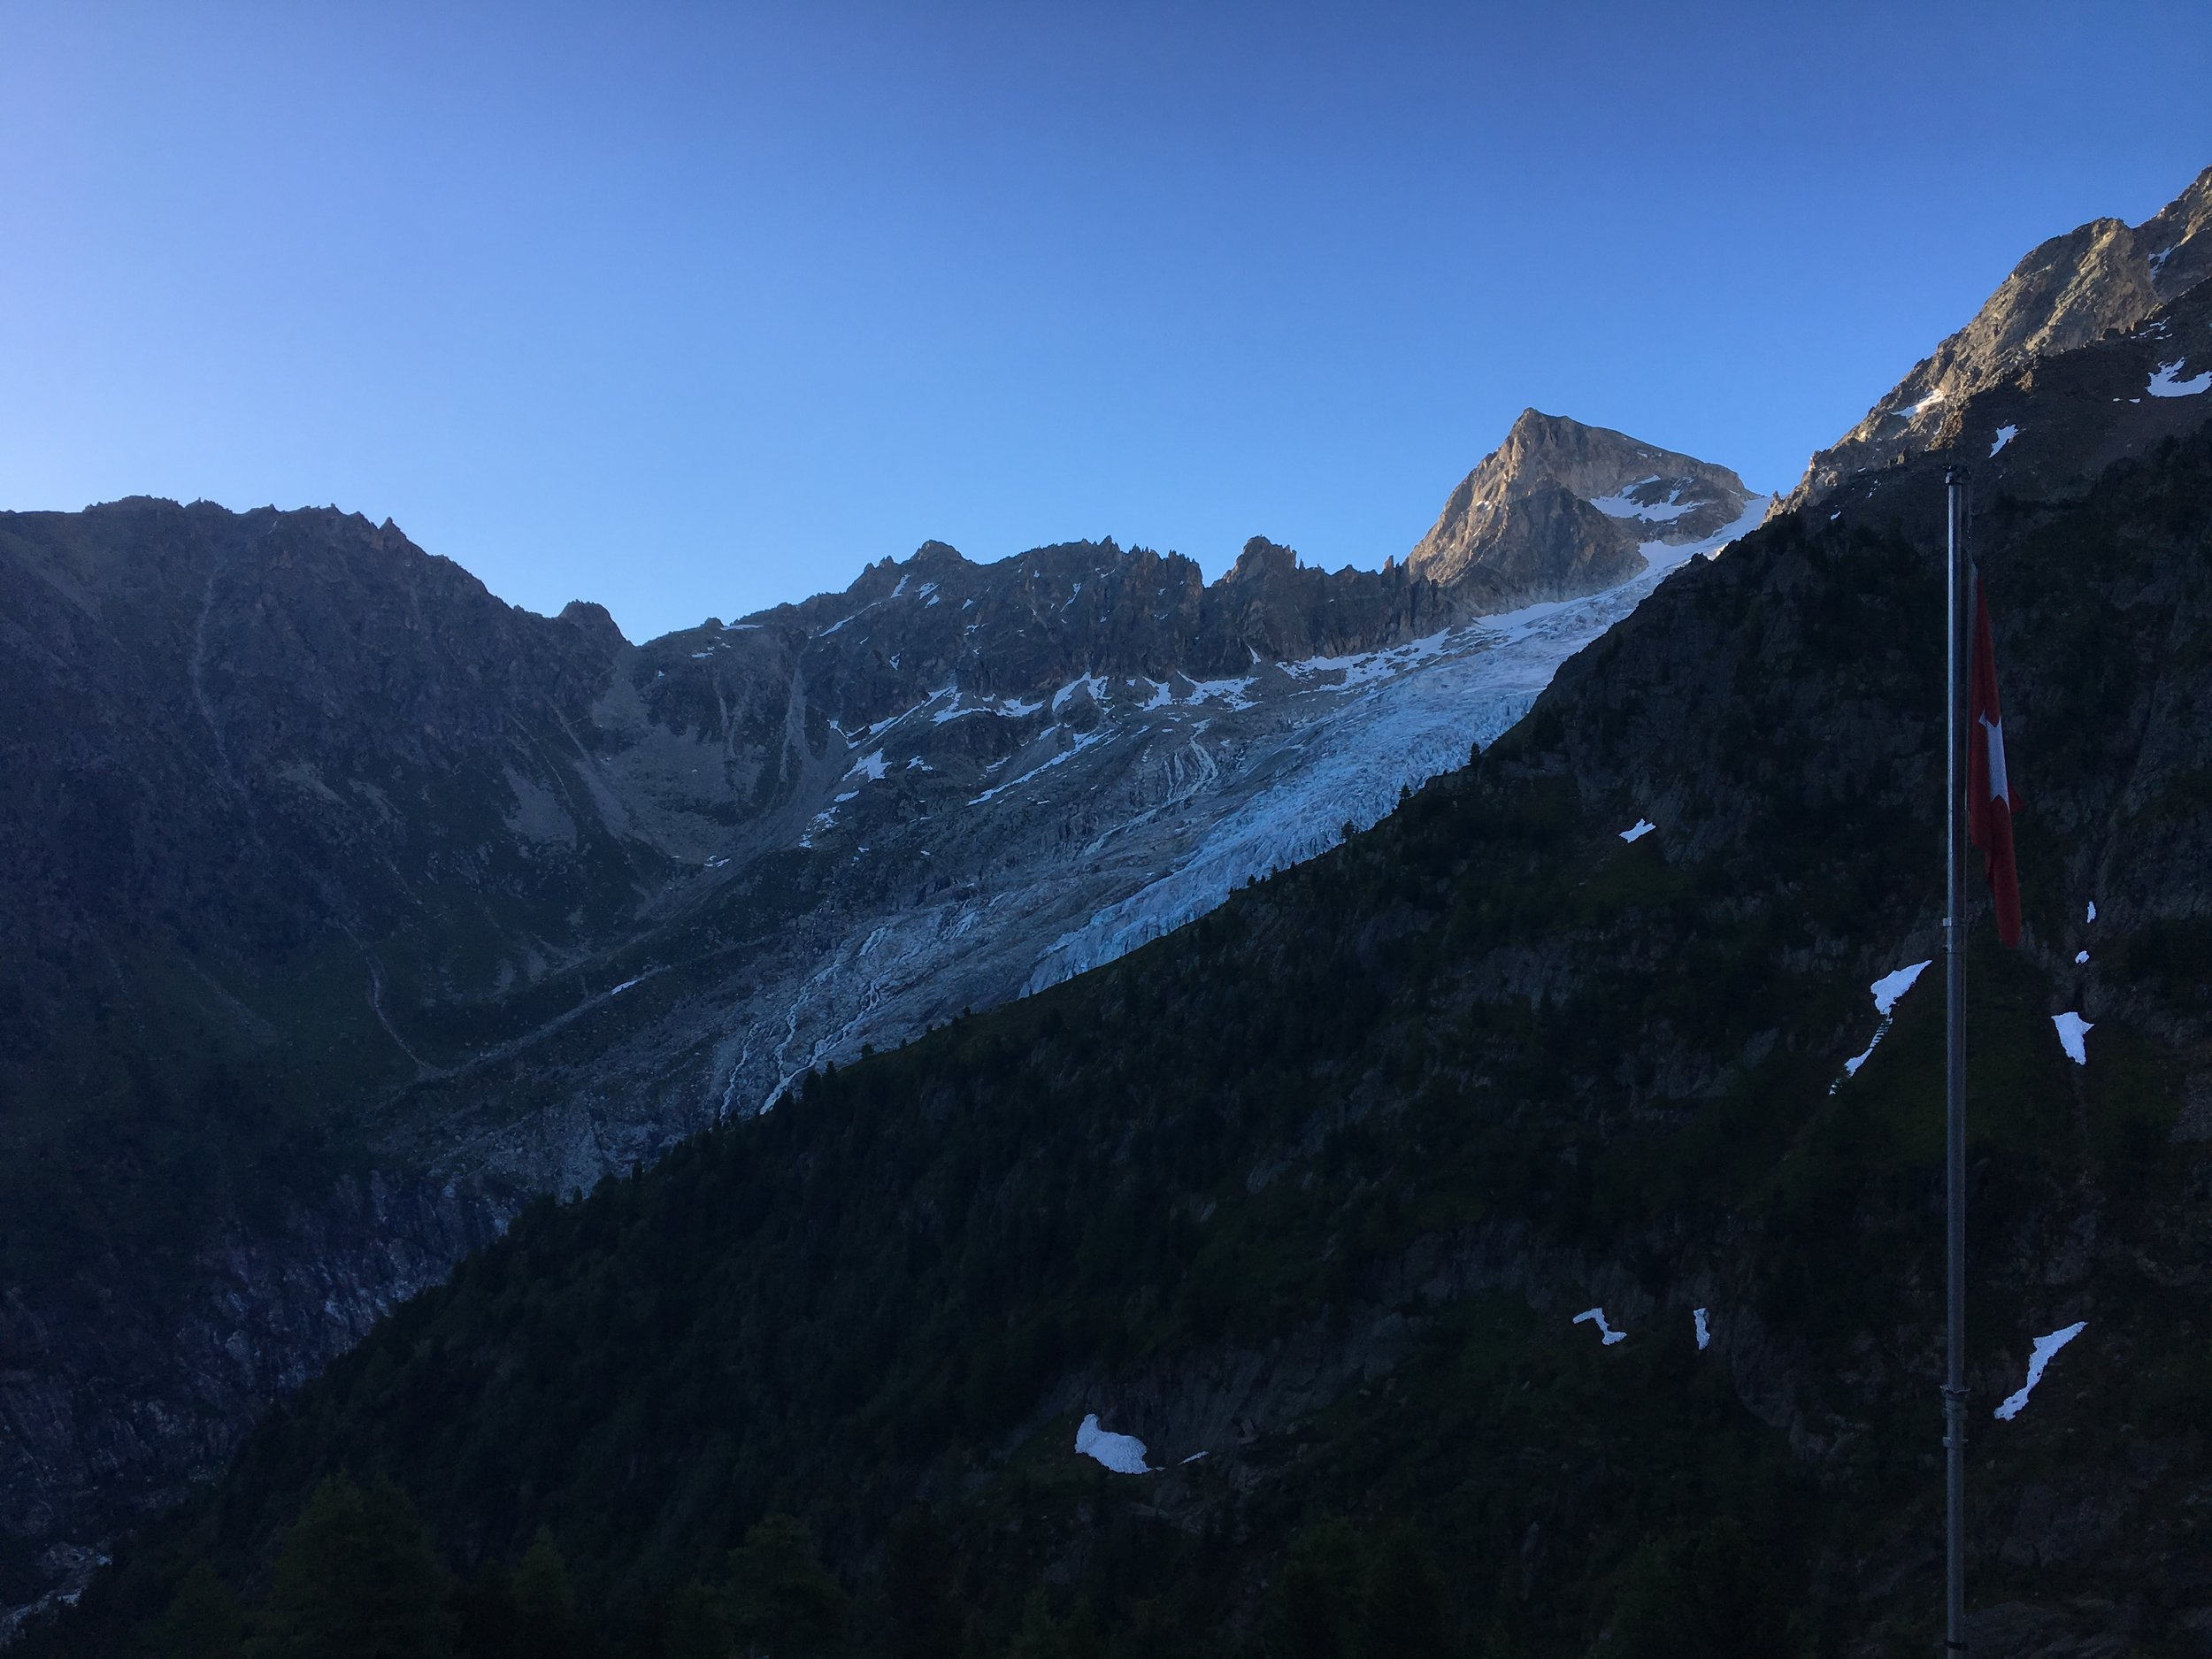 View from Refuge Les Grands of Glacier De Trient running down the valley with the difficult mountain pass of Fenetre d'Arpette located in the dip on the left side of the ridge